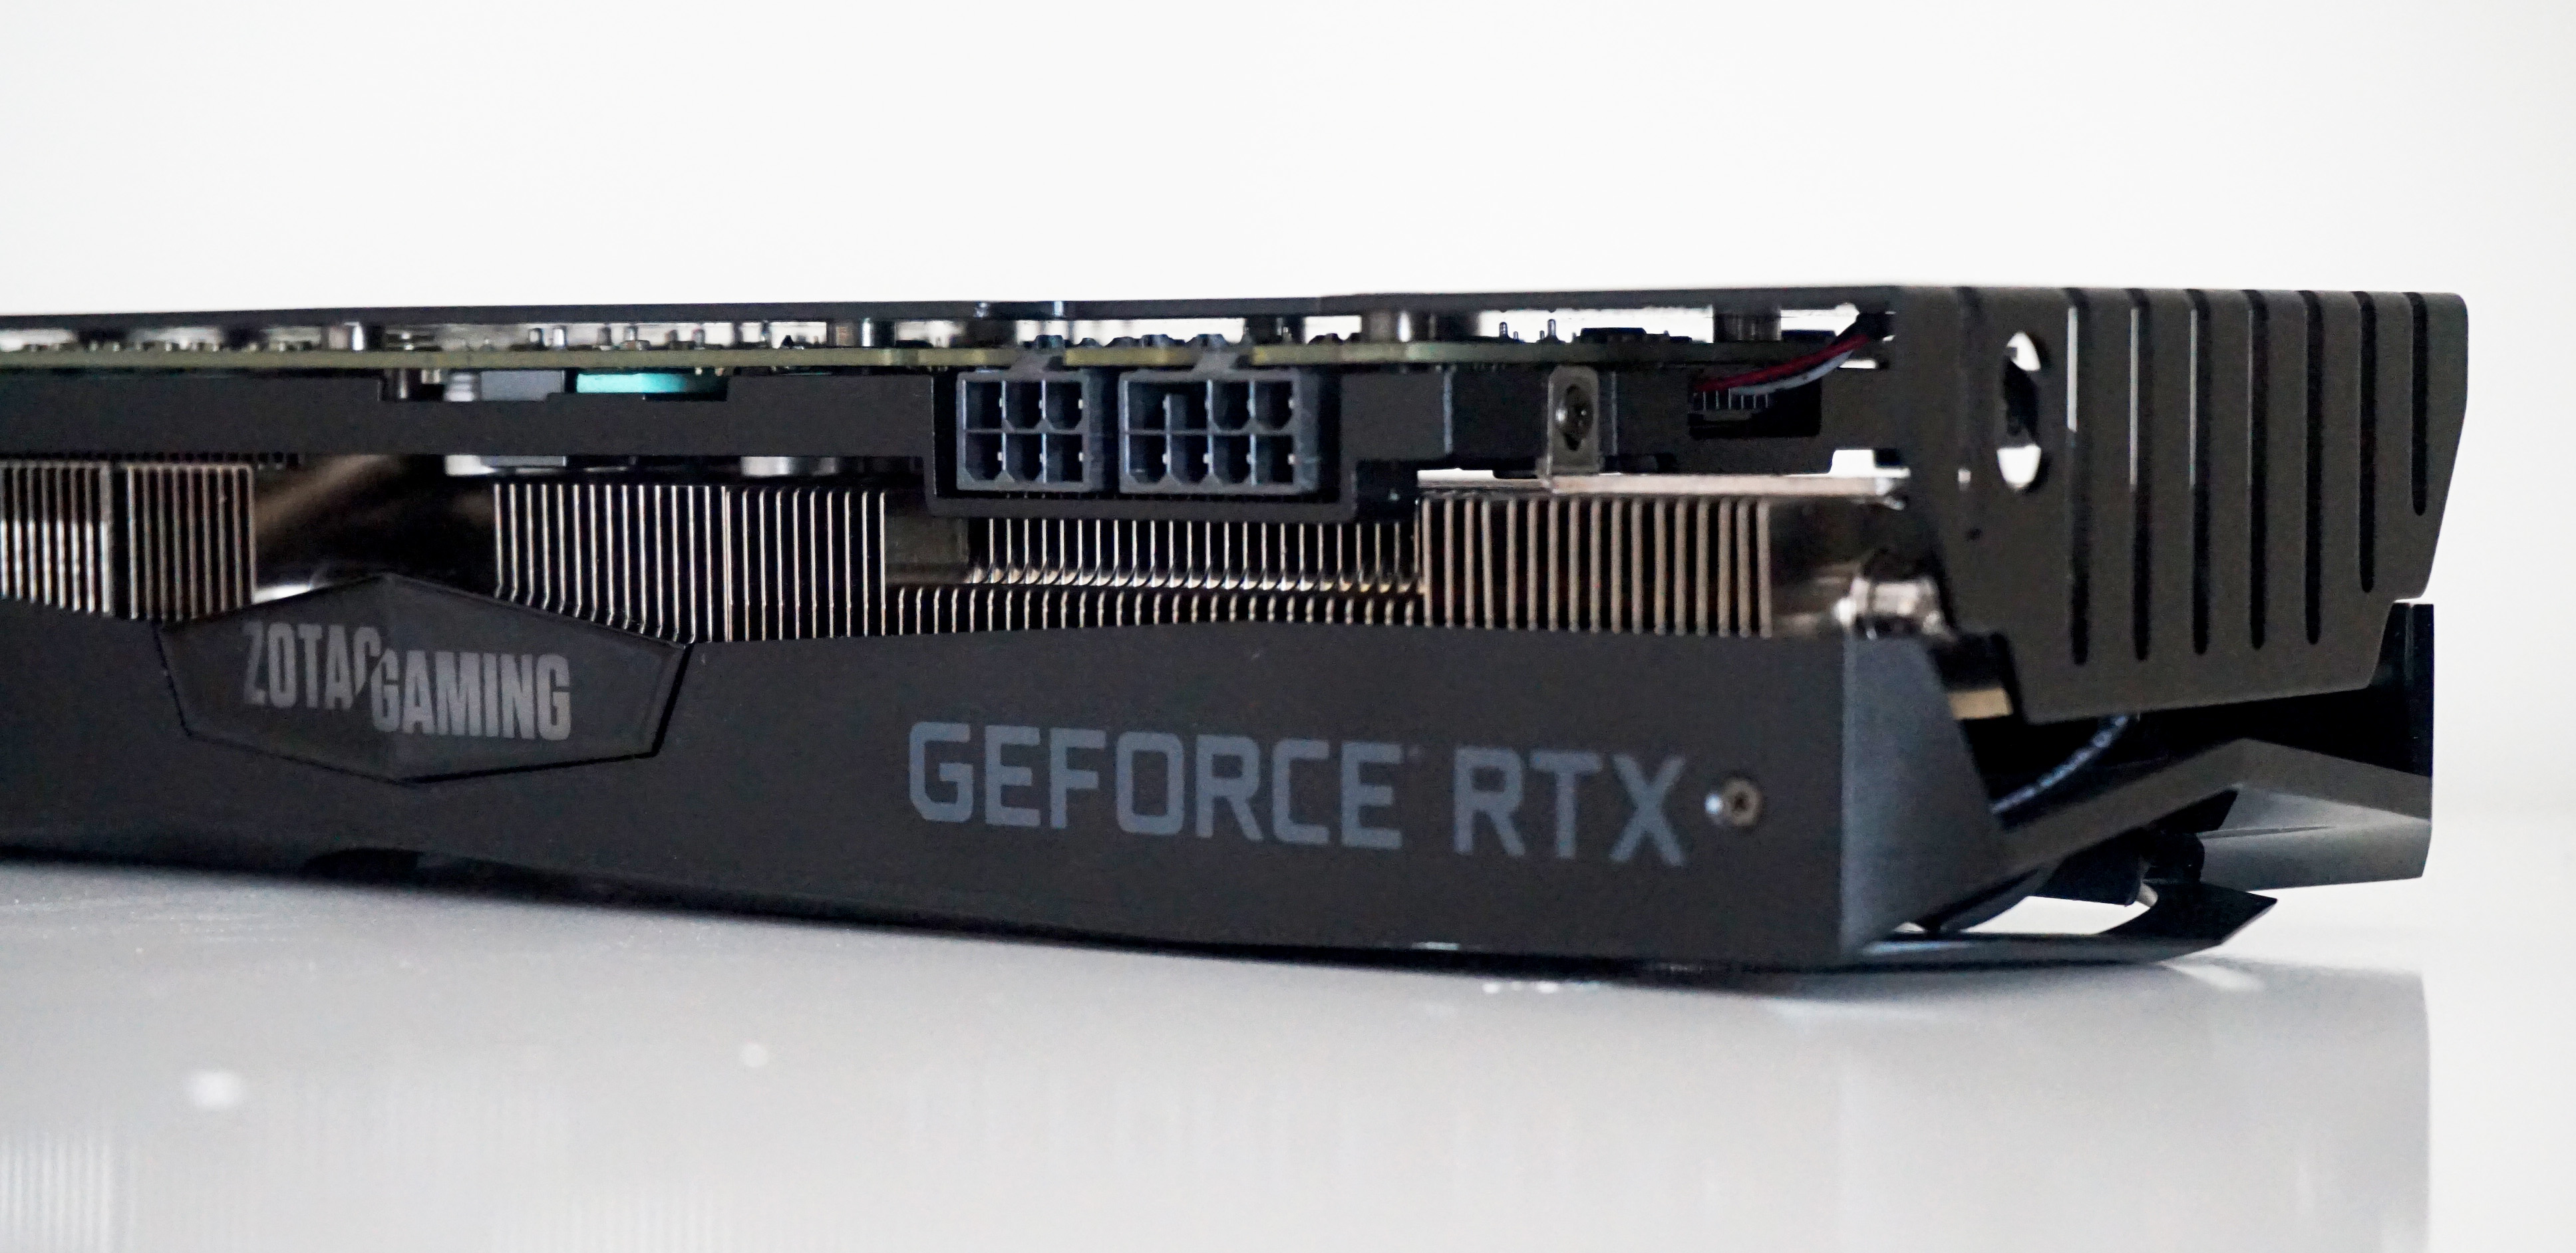 Nvidia GeForce RTX 2070 review: Better than the GTX 1080